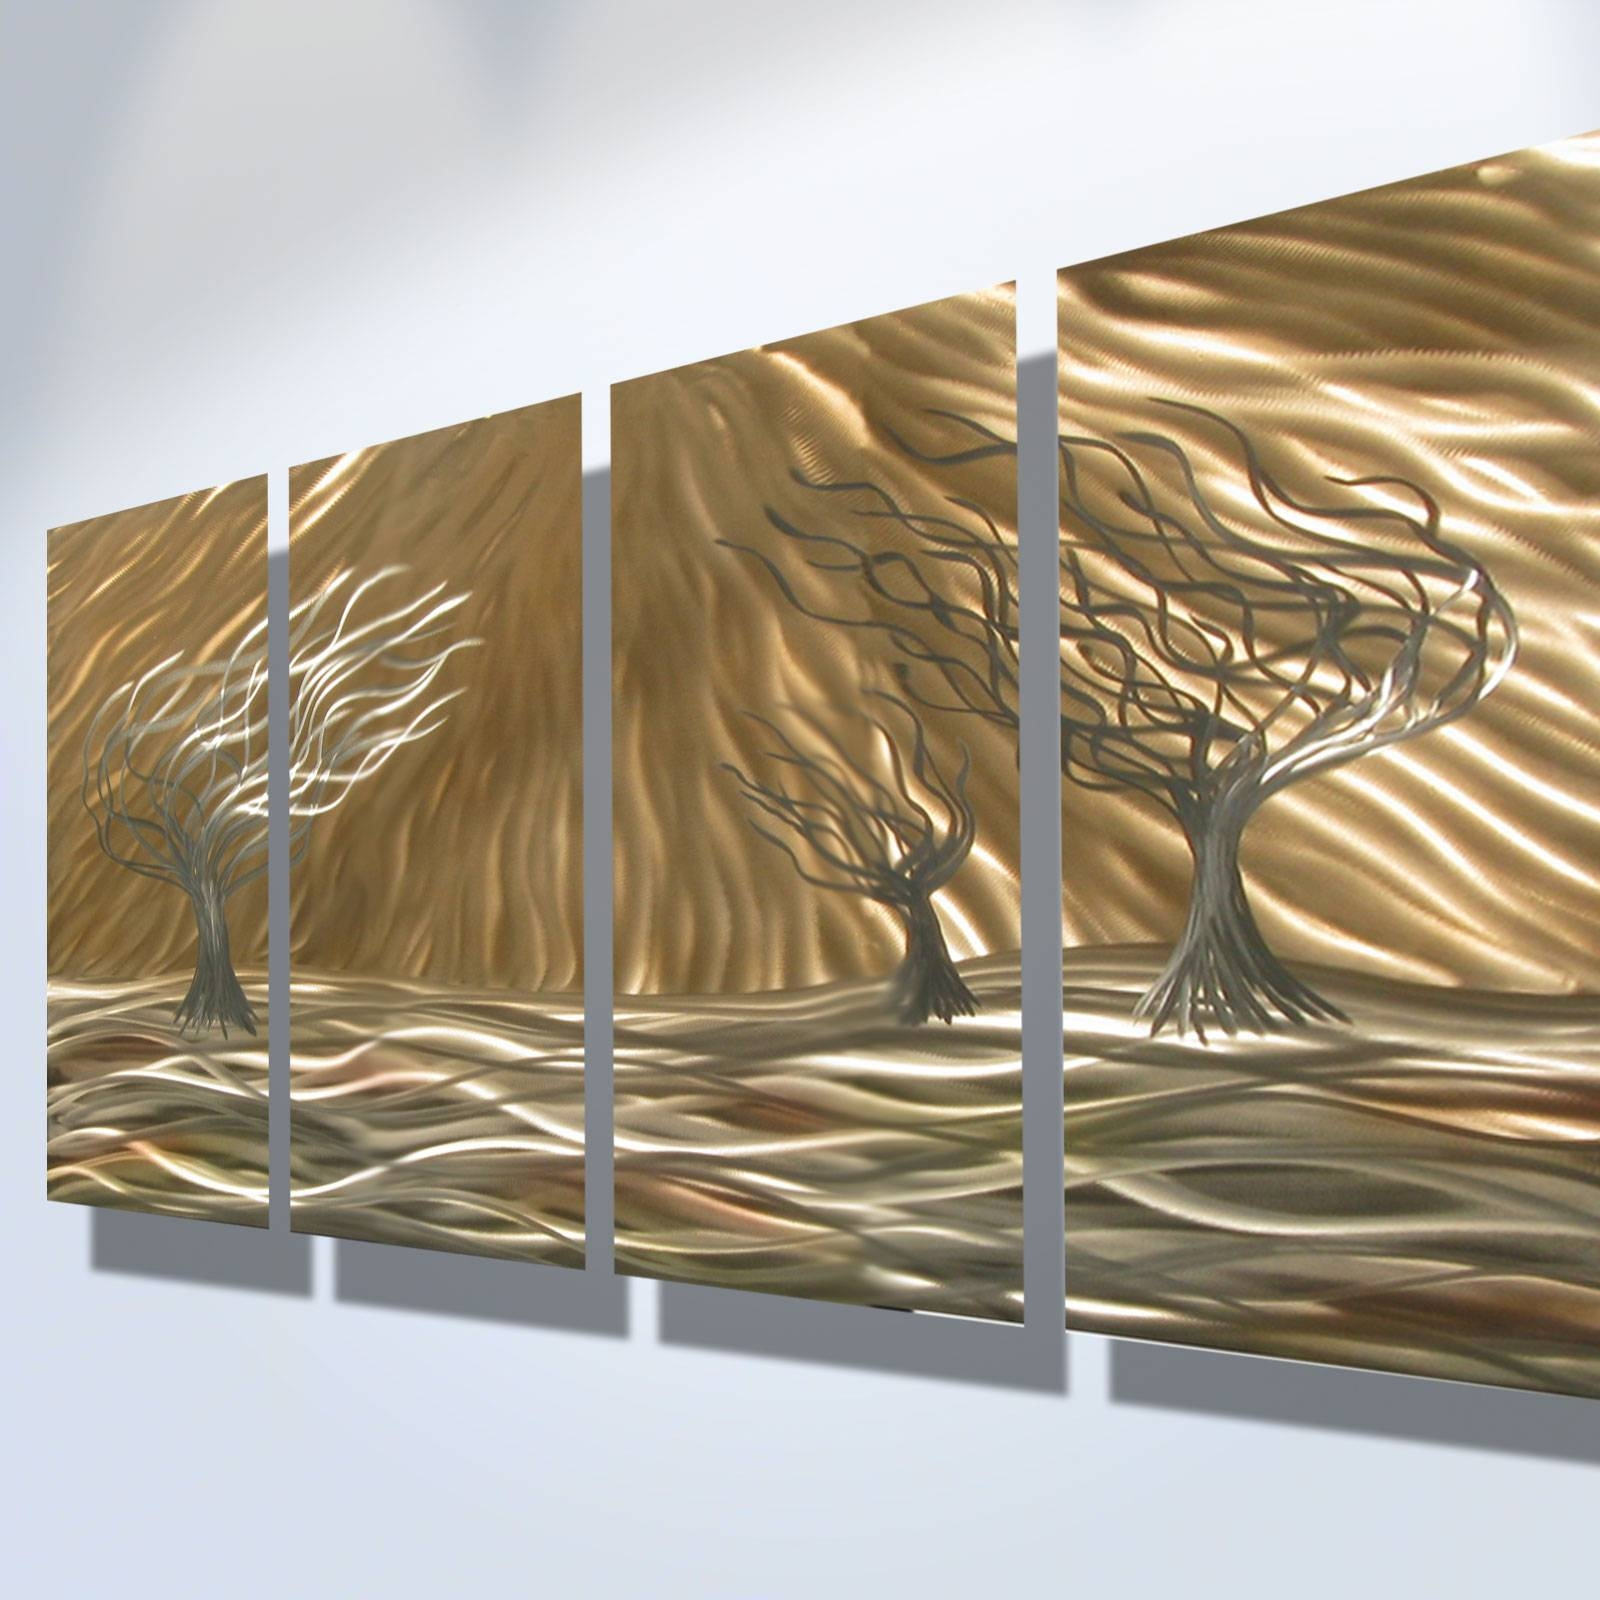 3 Trees 4 Panel – Abstract Metal Wall Art Contemporary Modern Pertaining To Current Contemporary Metal Wall Art Sculptures (Gallery 15 of 20)